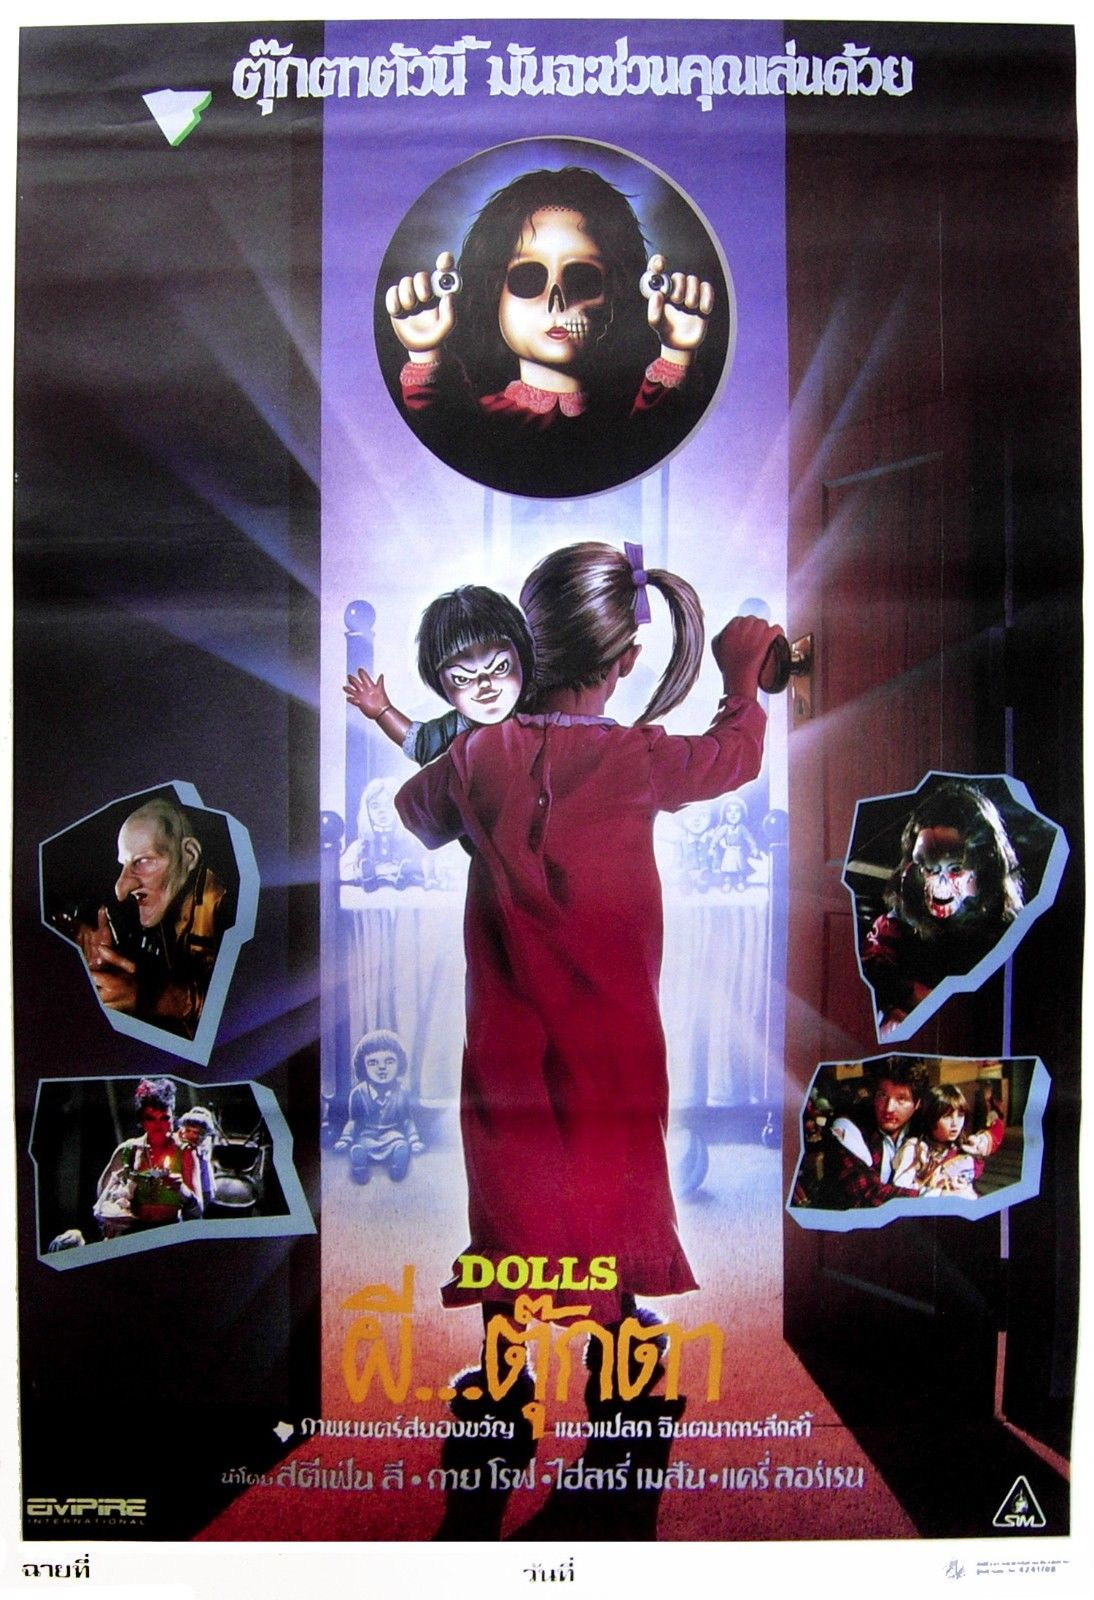 74384-DOLLS-Movie-Rare-Horror-Gore-Evil-Dead-Zombies-Wall-Print-Poster-Affiche